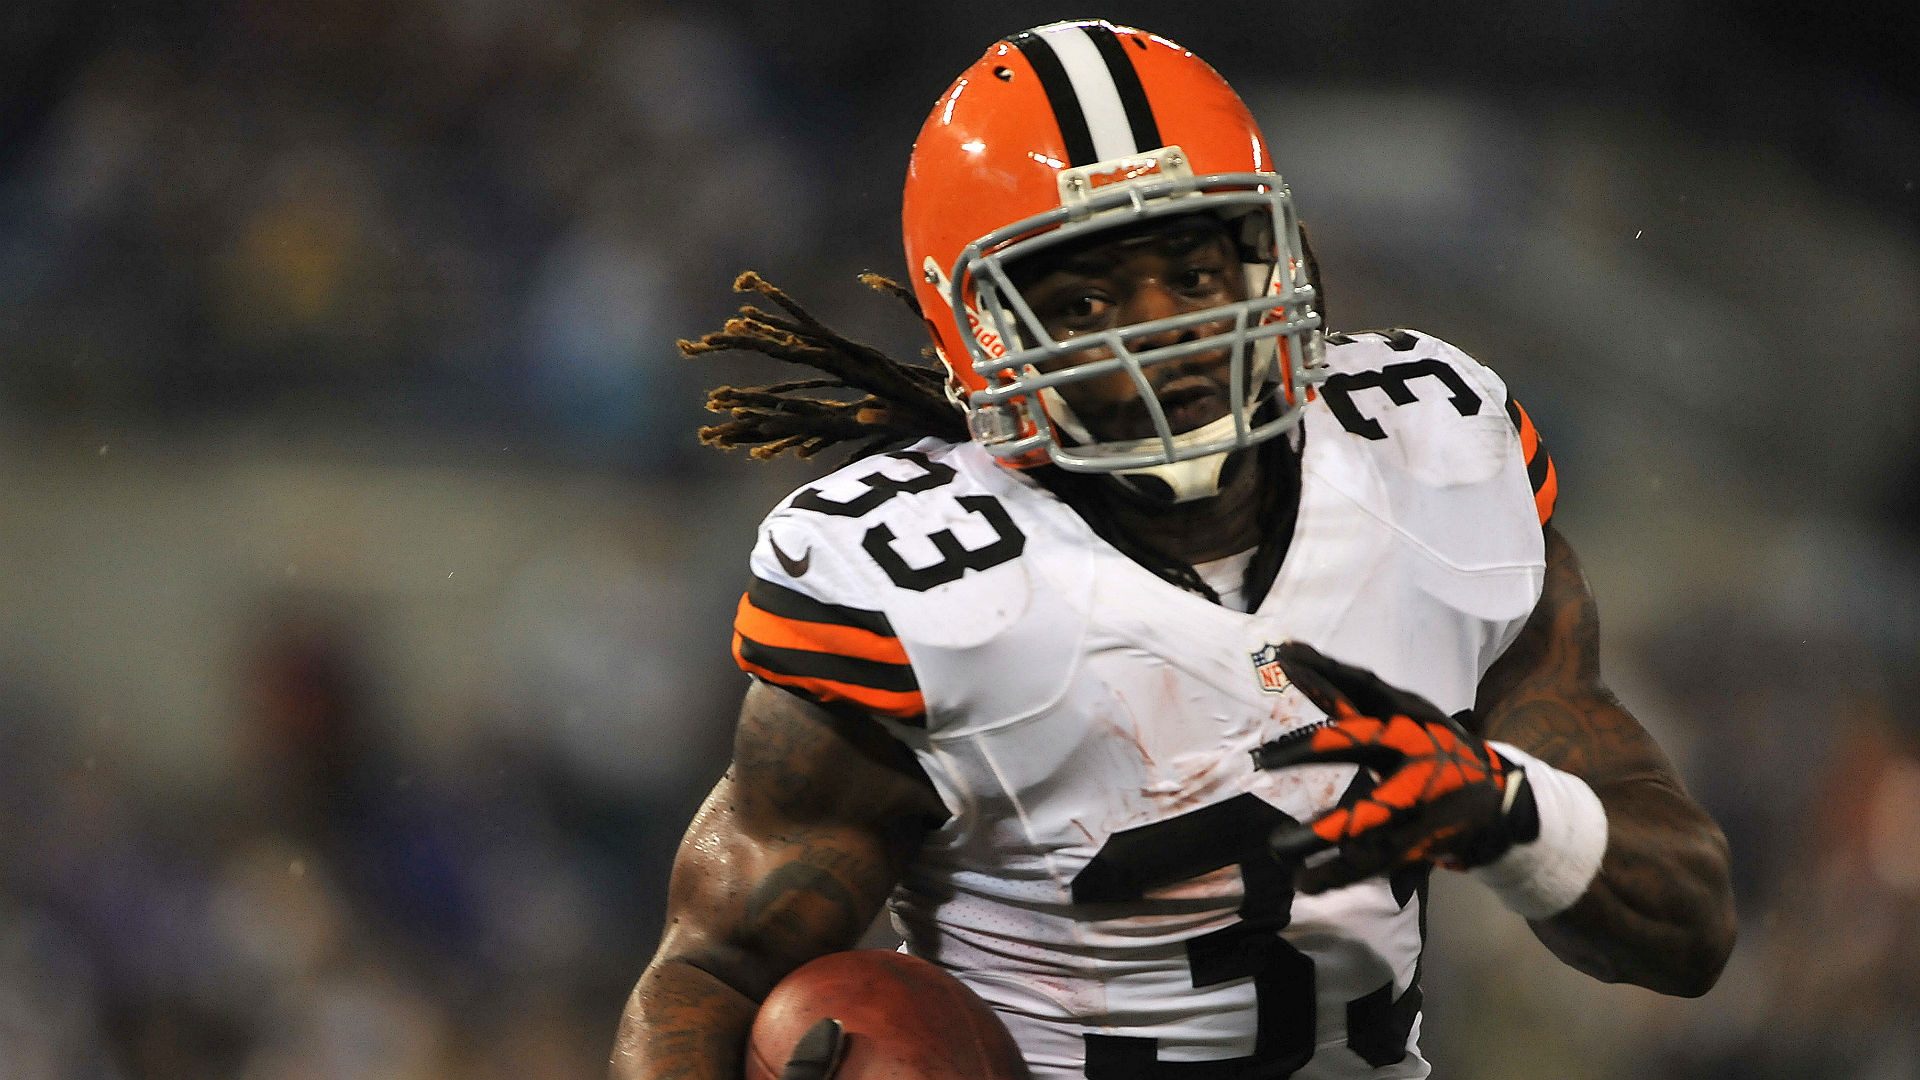 Trent Richardson signs with Saskatchewan Roughriders